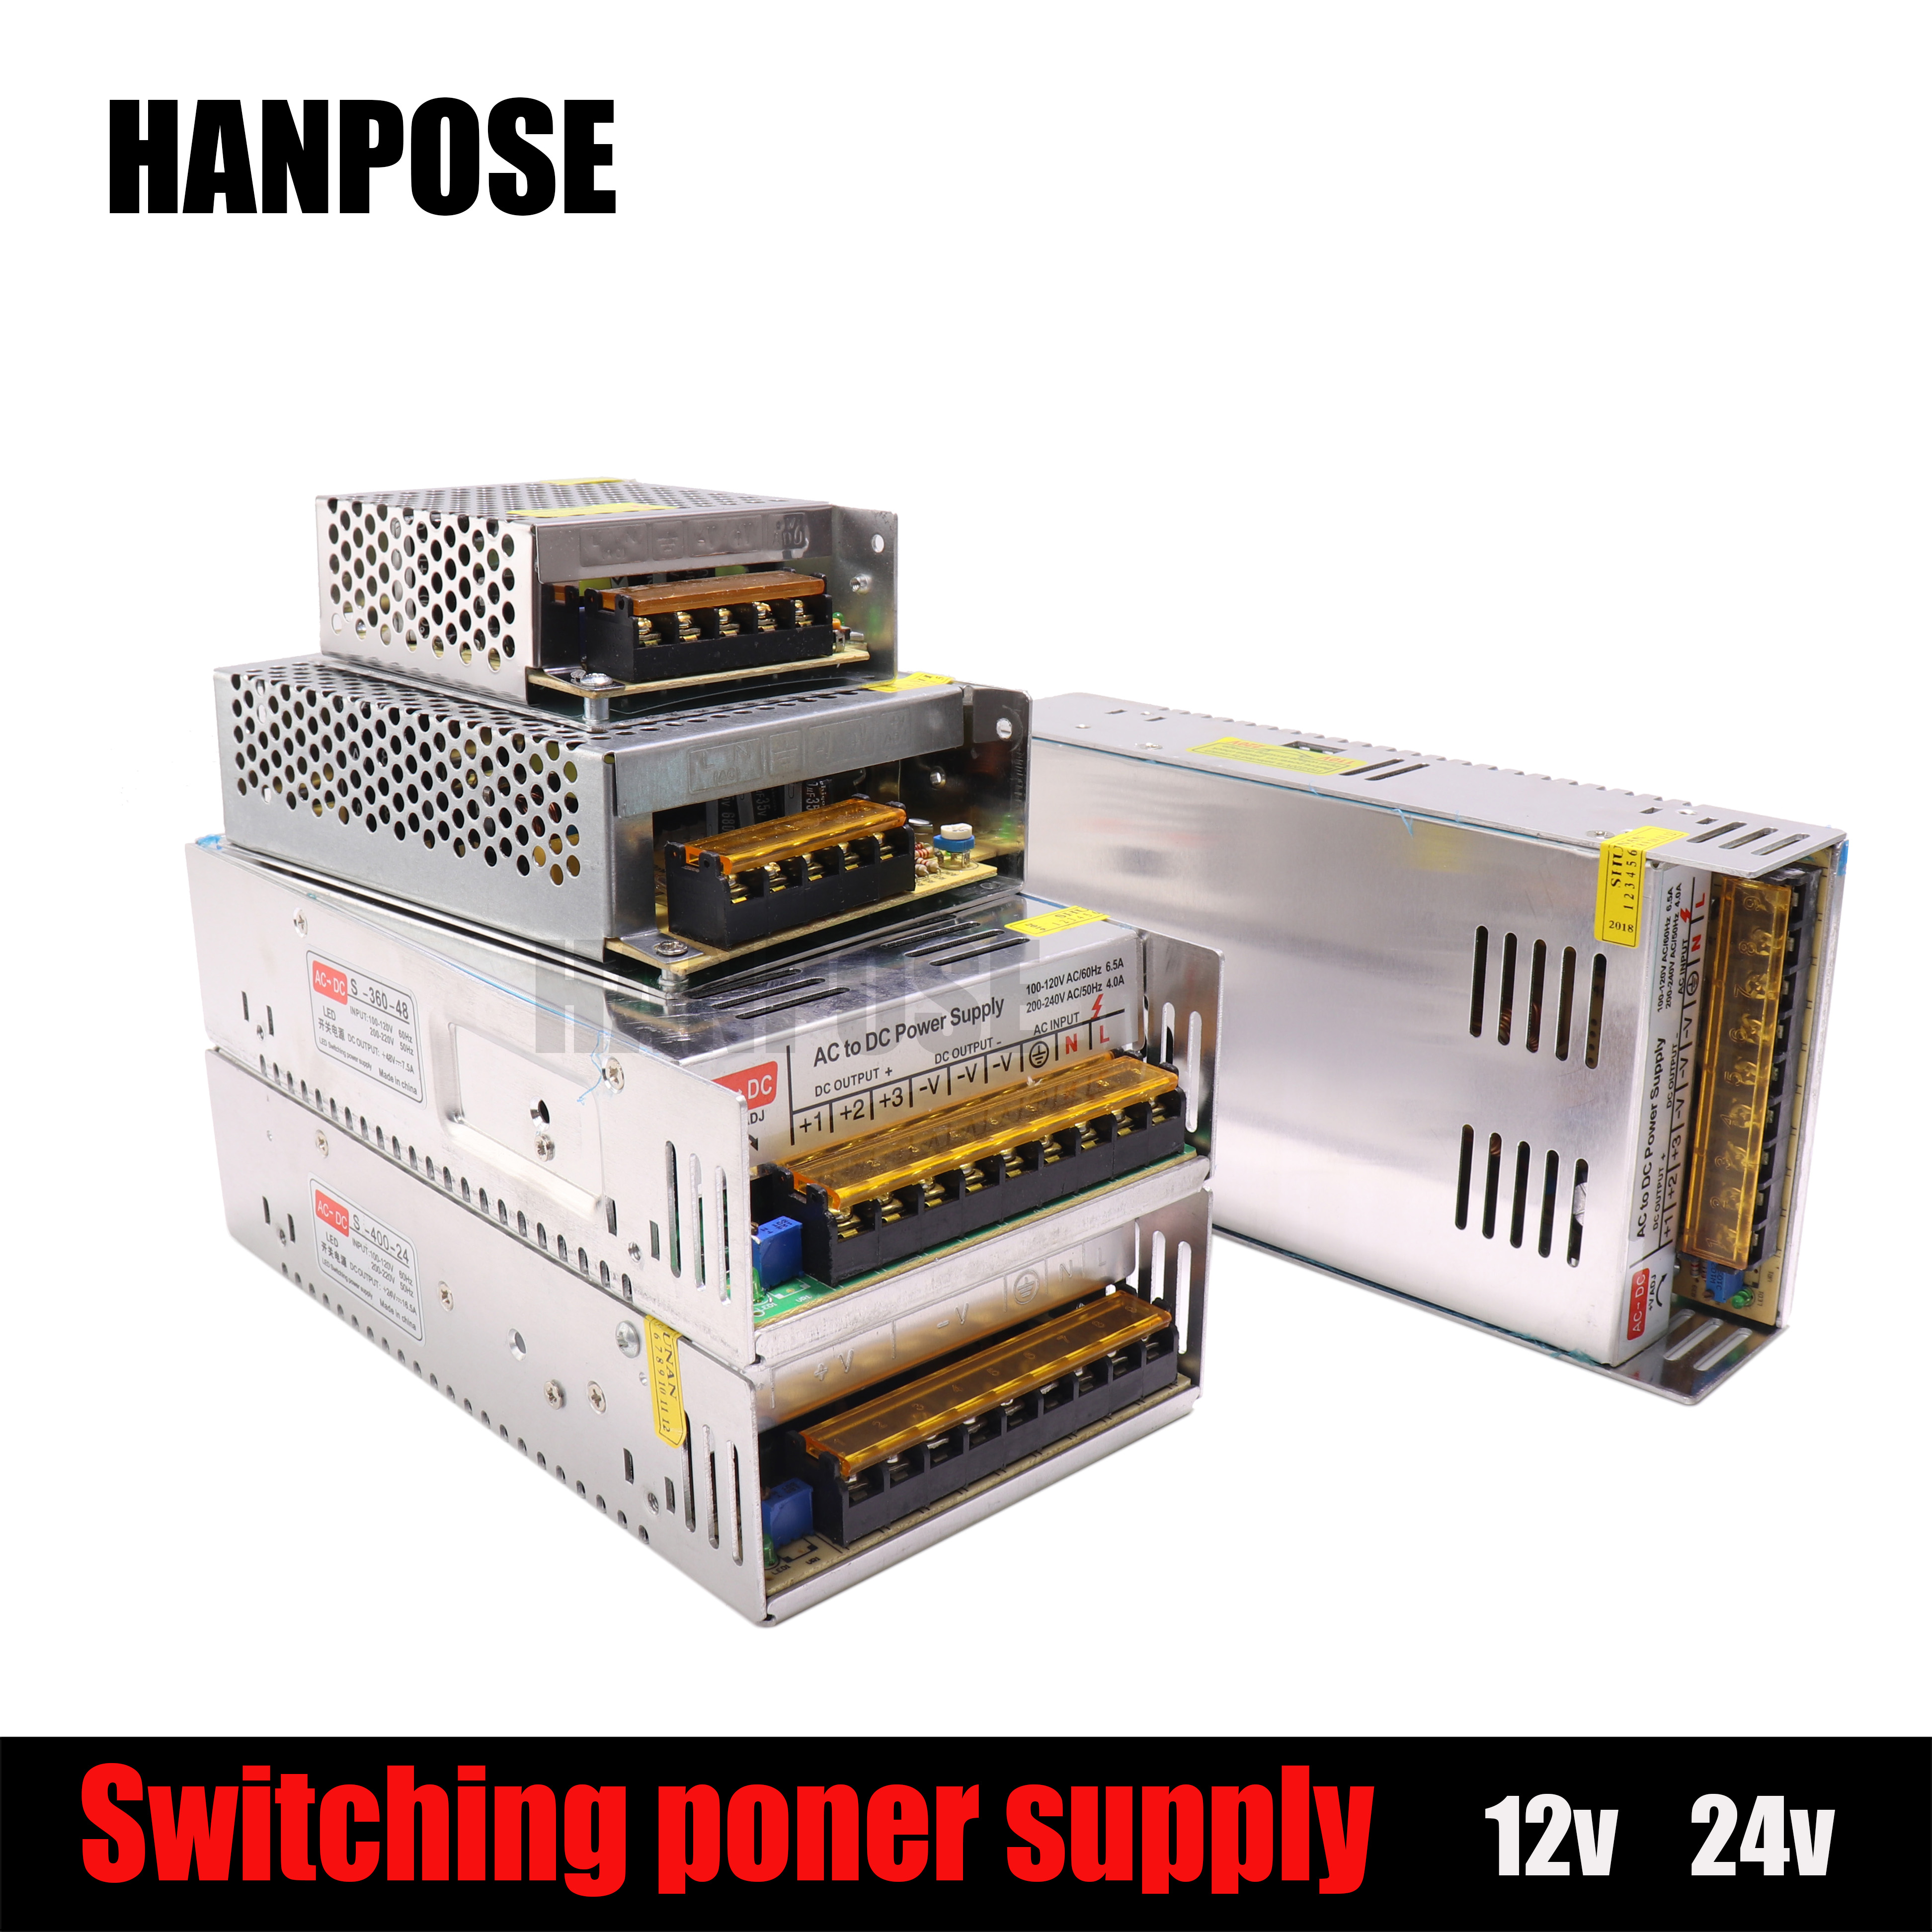 Switching Power Supply 2A 3A <font><b>5A</b></font> 10A 15A 20A 30A 40A Power Supply Switching Power <font><b>AC</b></font> 110V 220V To DC12V <font><b>24V</b></font> For Led Strip Lights image